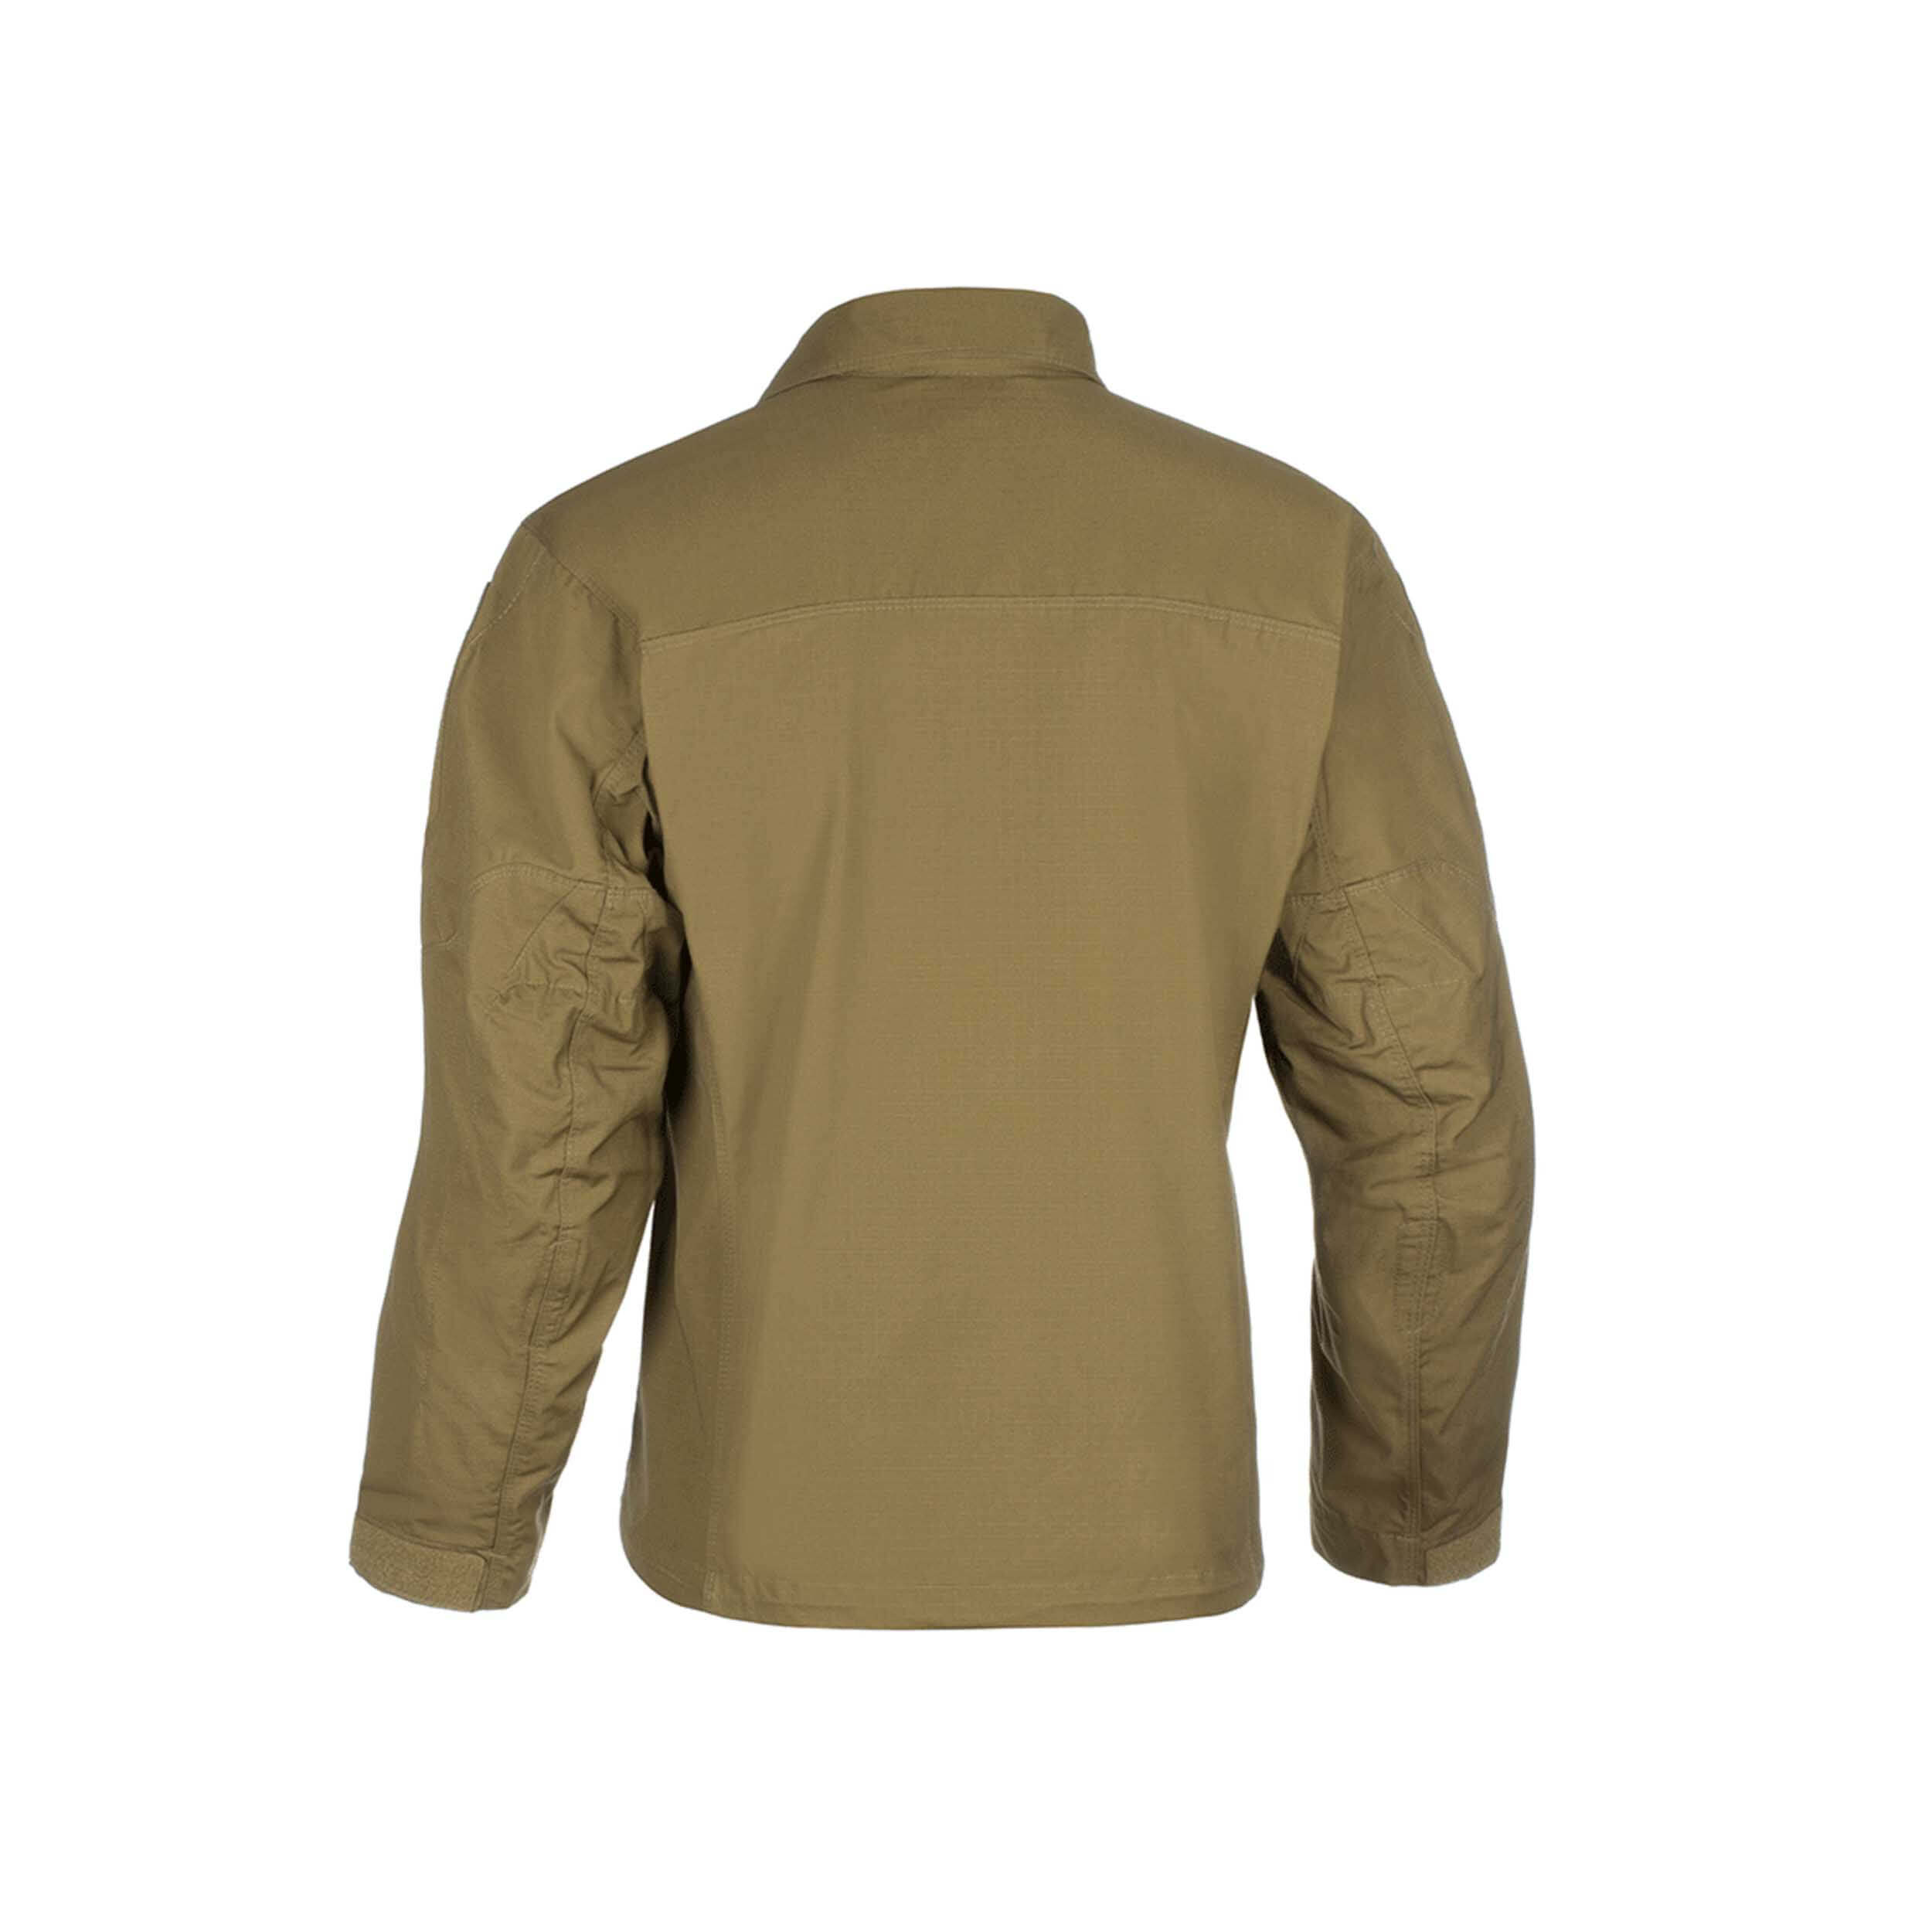 Clawgear Raider MK.IV Field Shirt Coyote